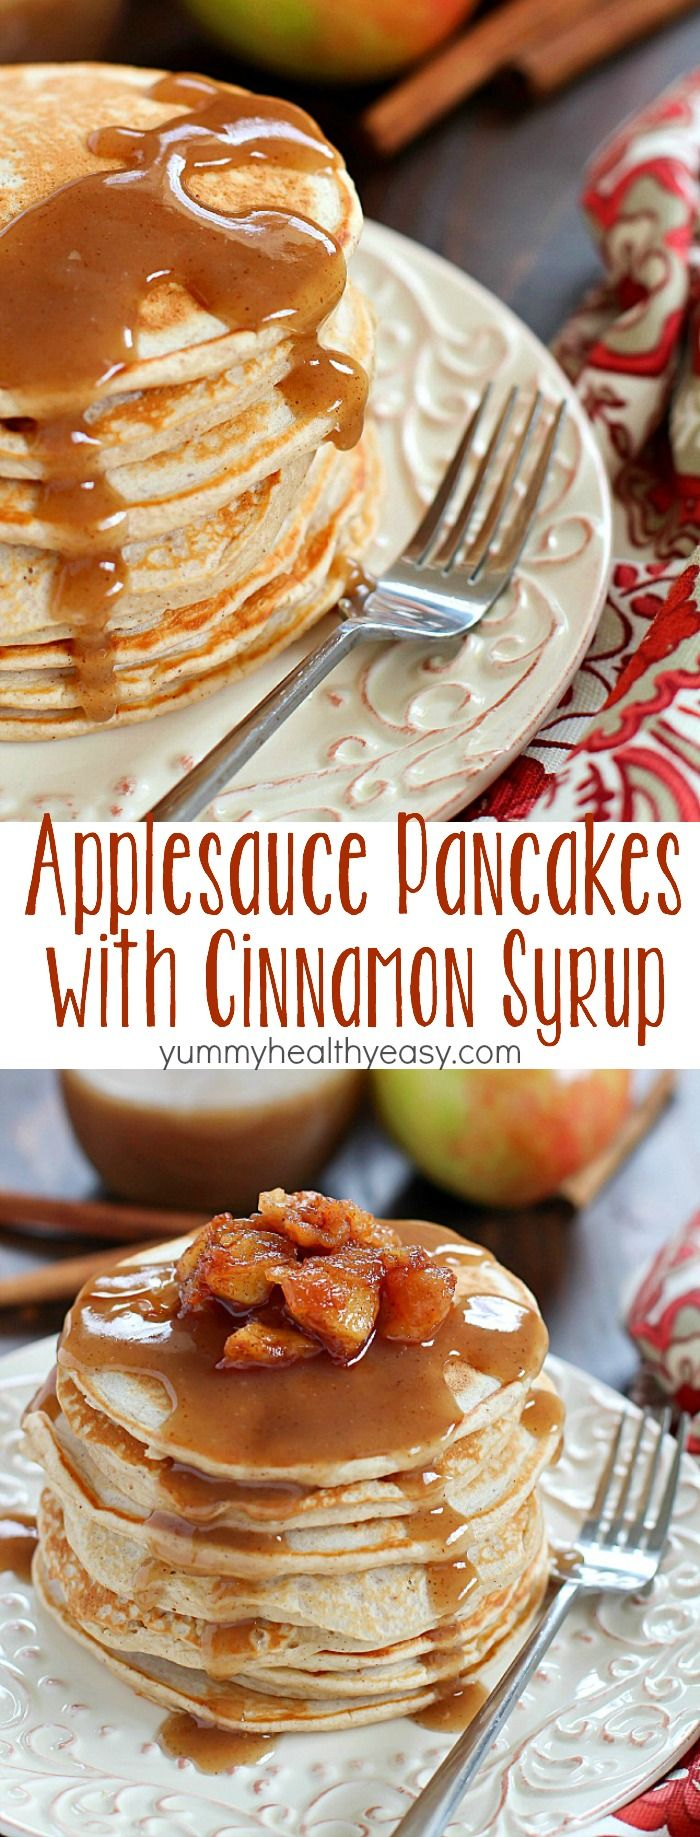 Start your morning with some Applesauce Pancakes with Cinnamon Syrup! These pancakes are healthy, light, fluffy and full of fall flavors. The cinnamon syrup is to-die-for! You won't regret making up a batch of these for breakfast - or lunch or dinner! ;)